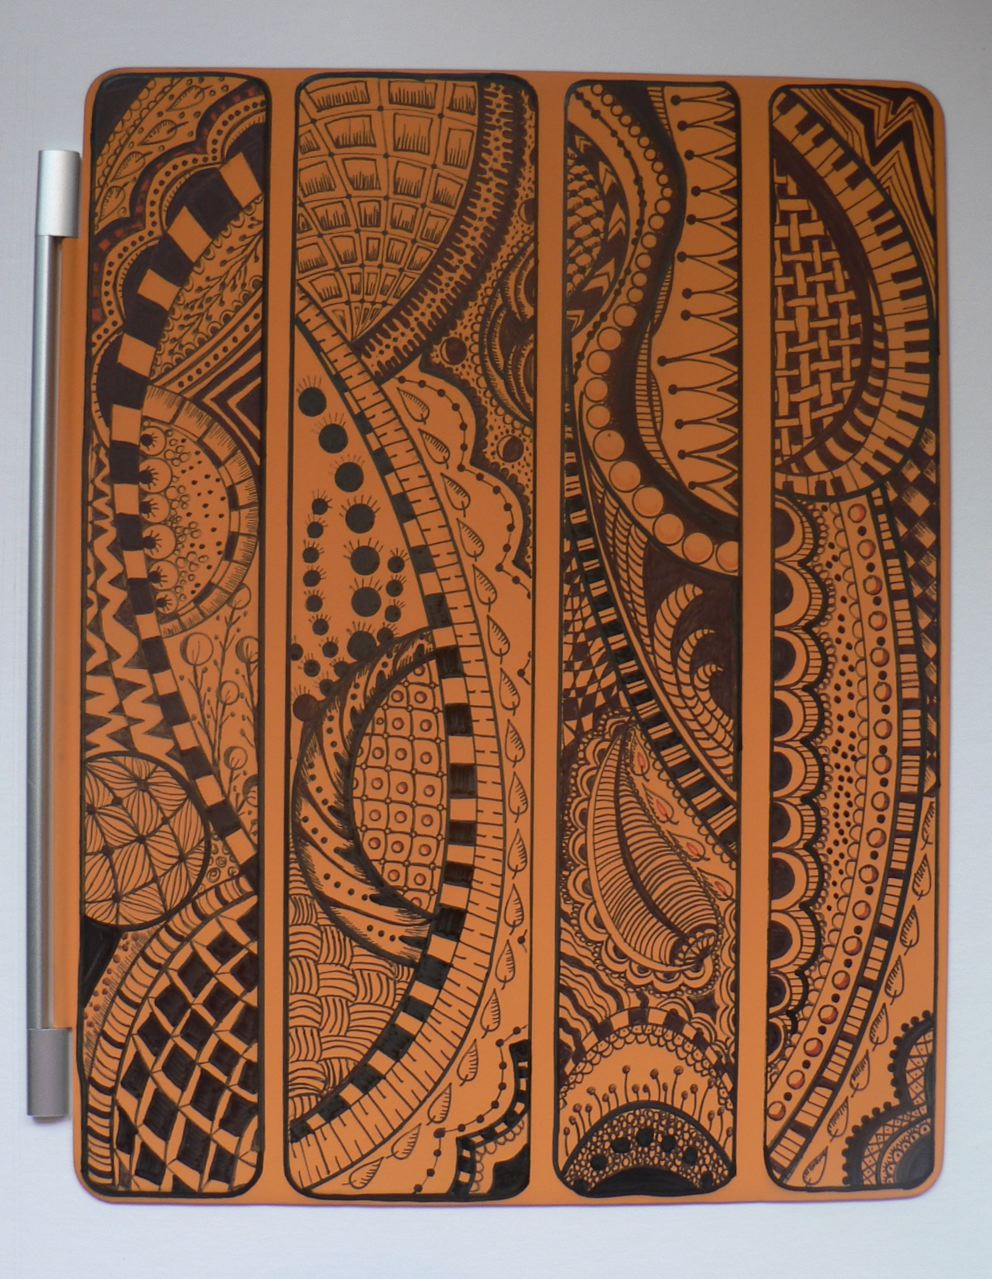 Zendoodle an iPad 2 cover